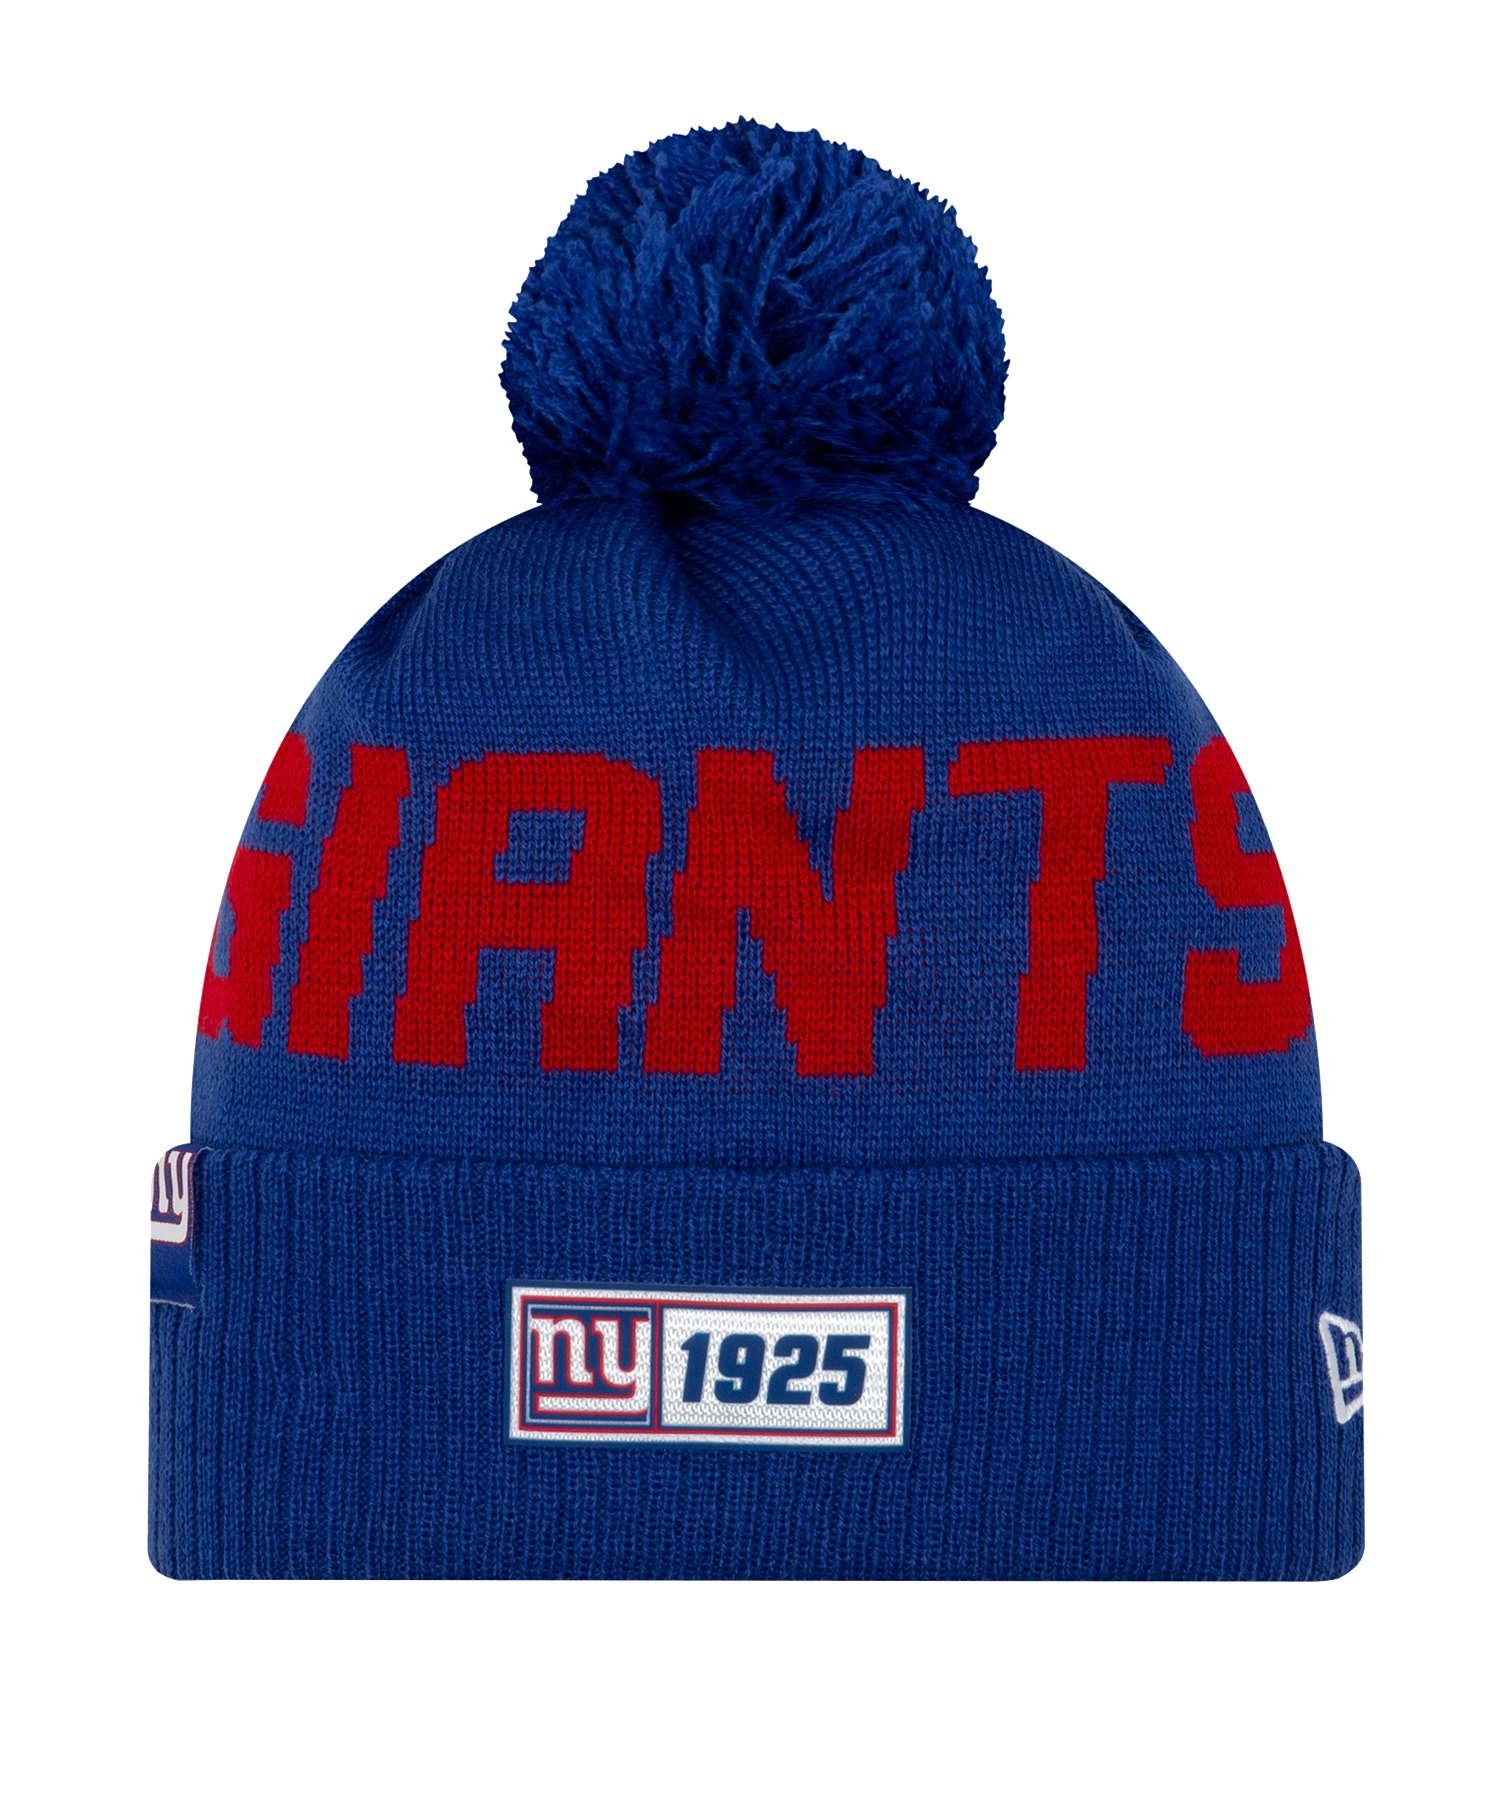 New Era New York Giants RD Strickmütze Blau - blau